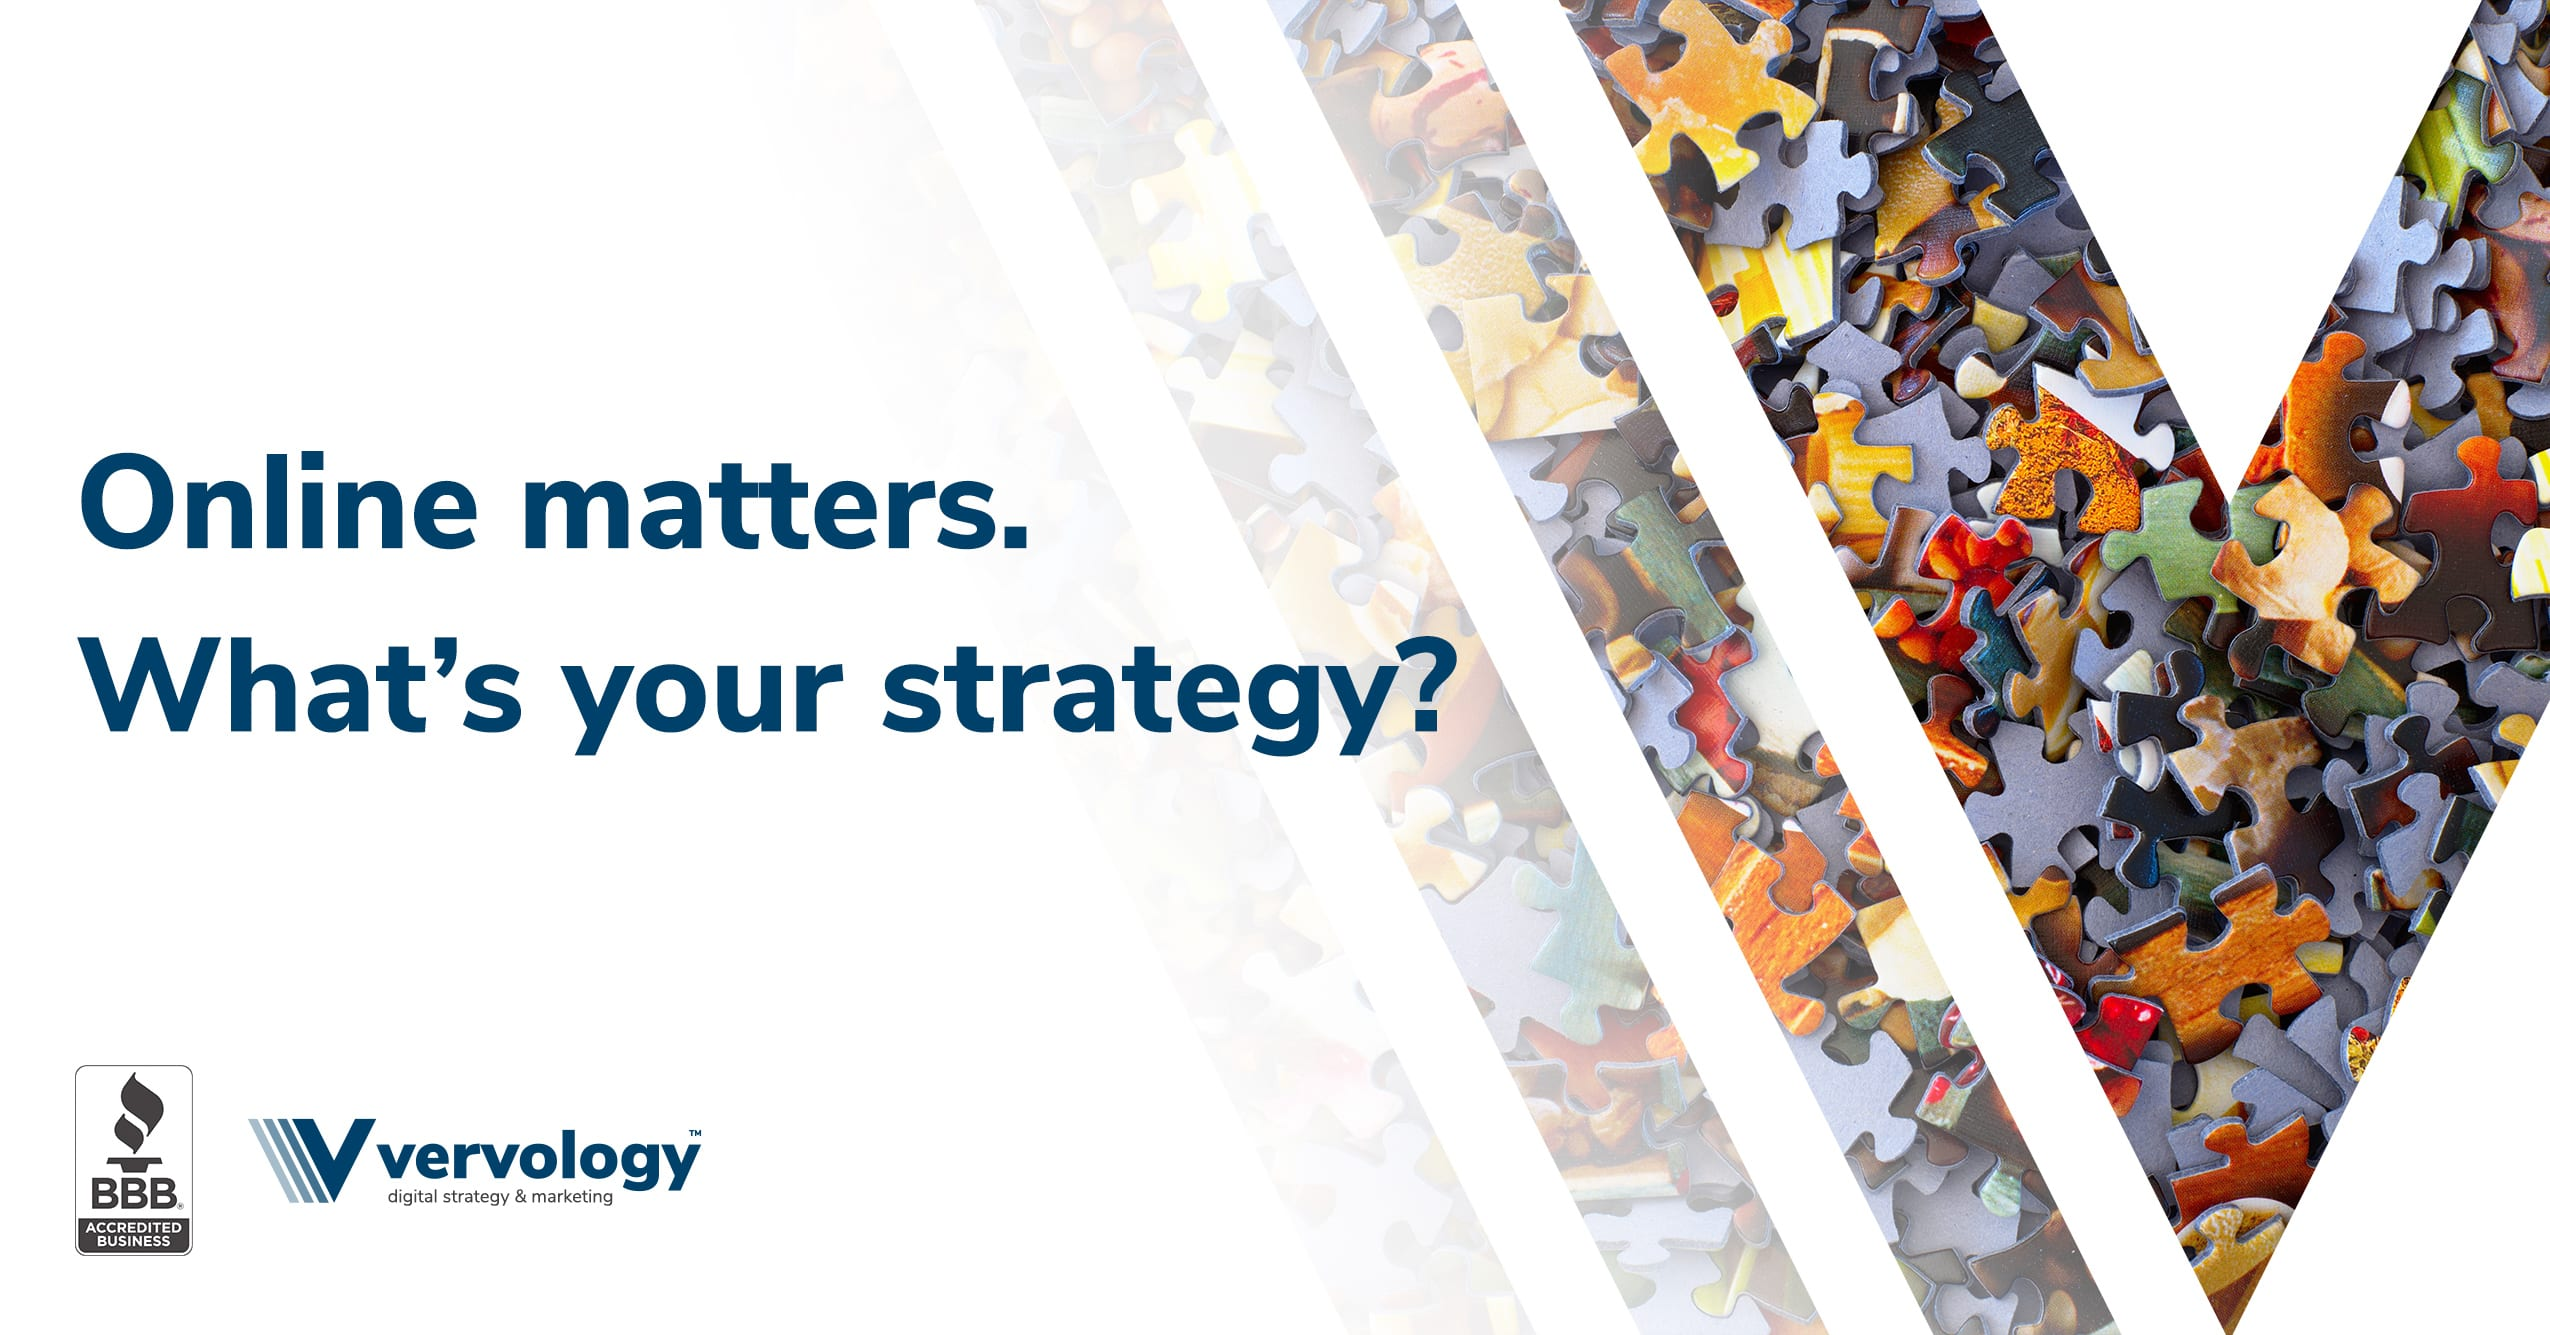 Online matters. What's your strategy?